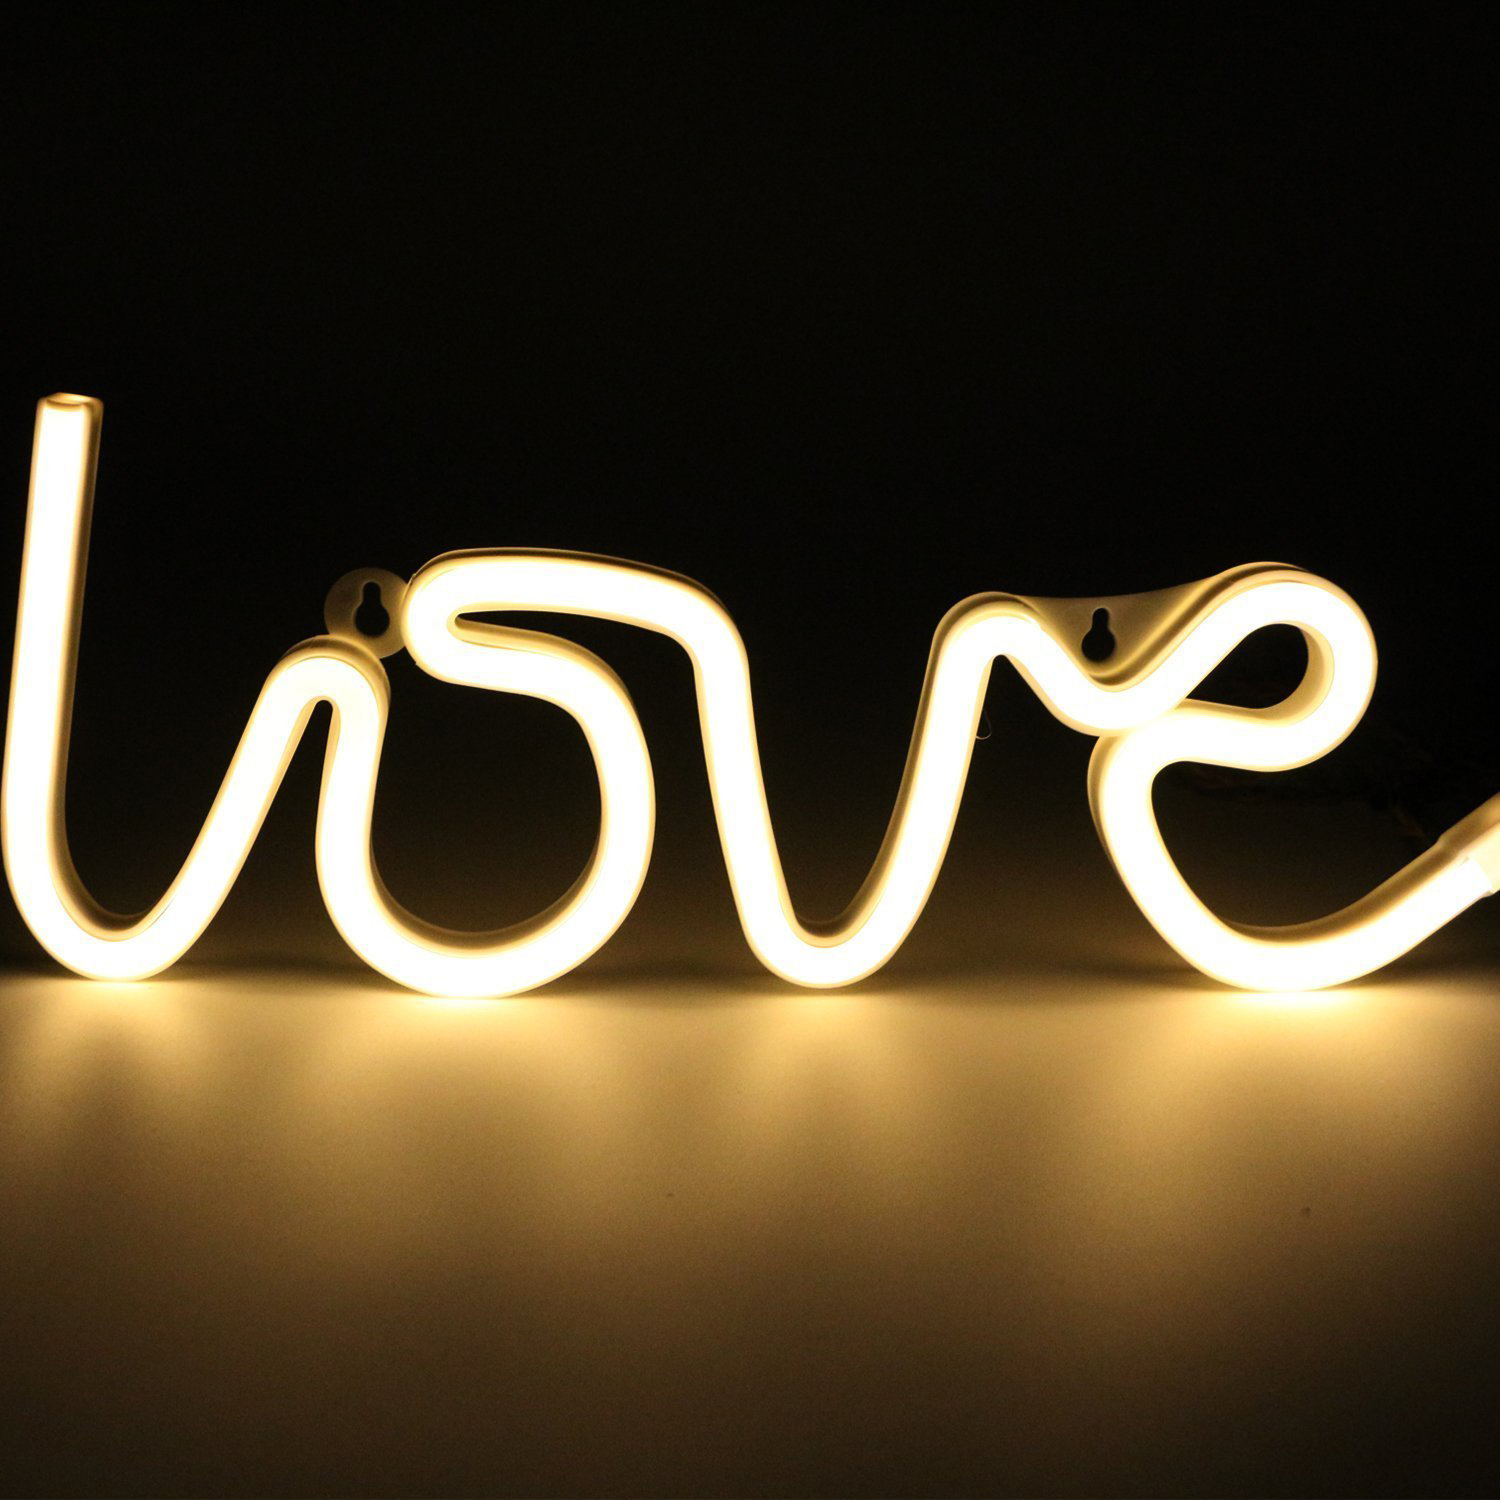 Party LOVE Letters Shape LED Night Light Wall Hanging Neon Light for Festival Party Wedding Decor Lighting Bulb